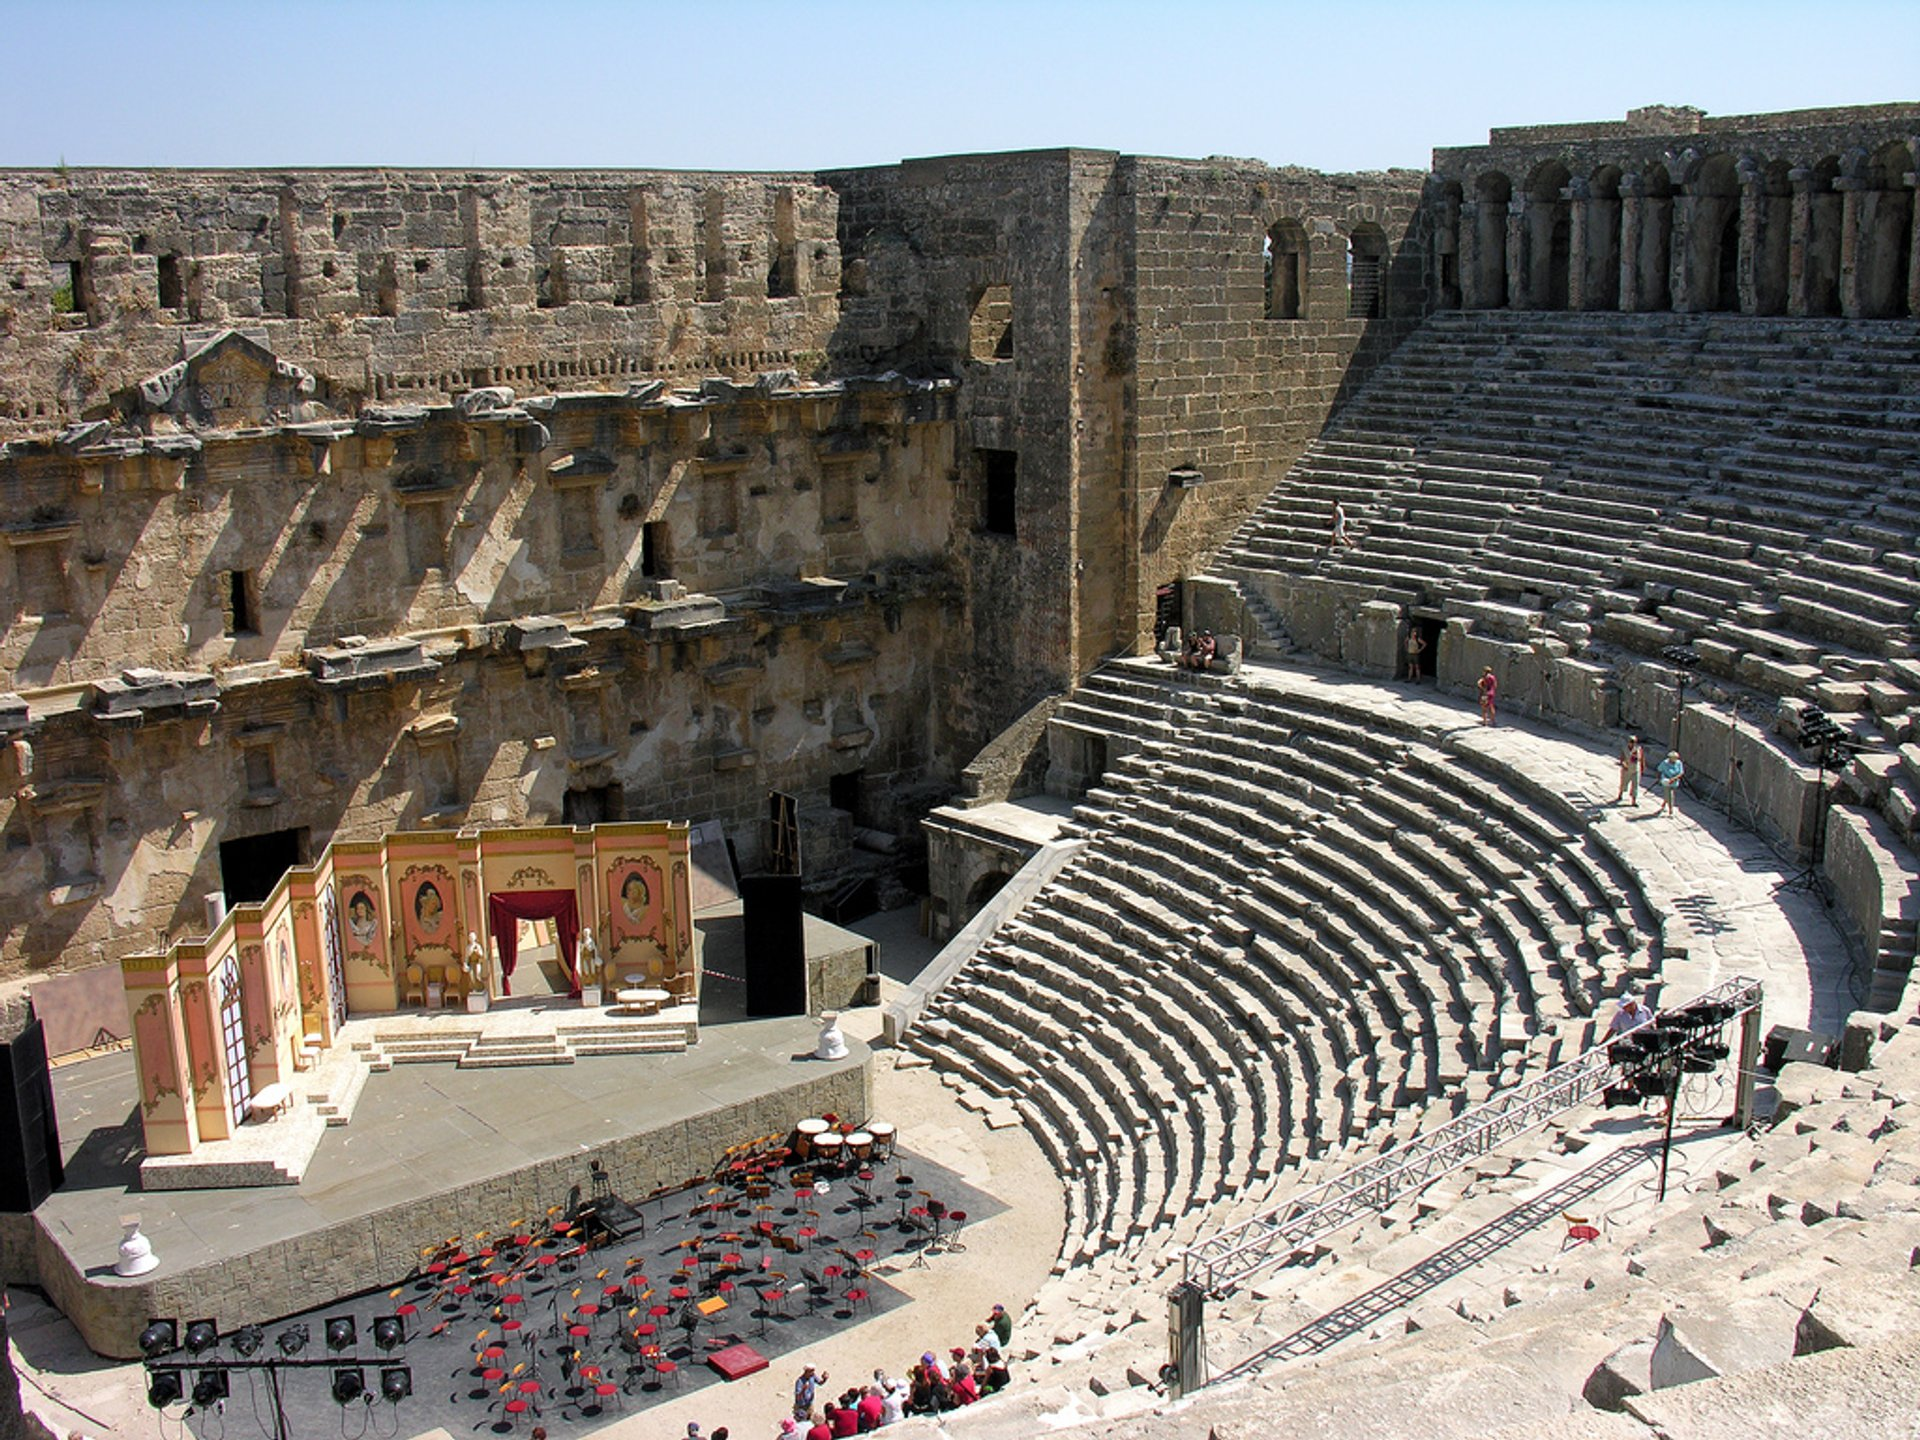 Aspendos Opera and Ballet Festival in Turkey - Best Season 2020